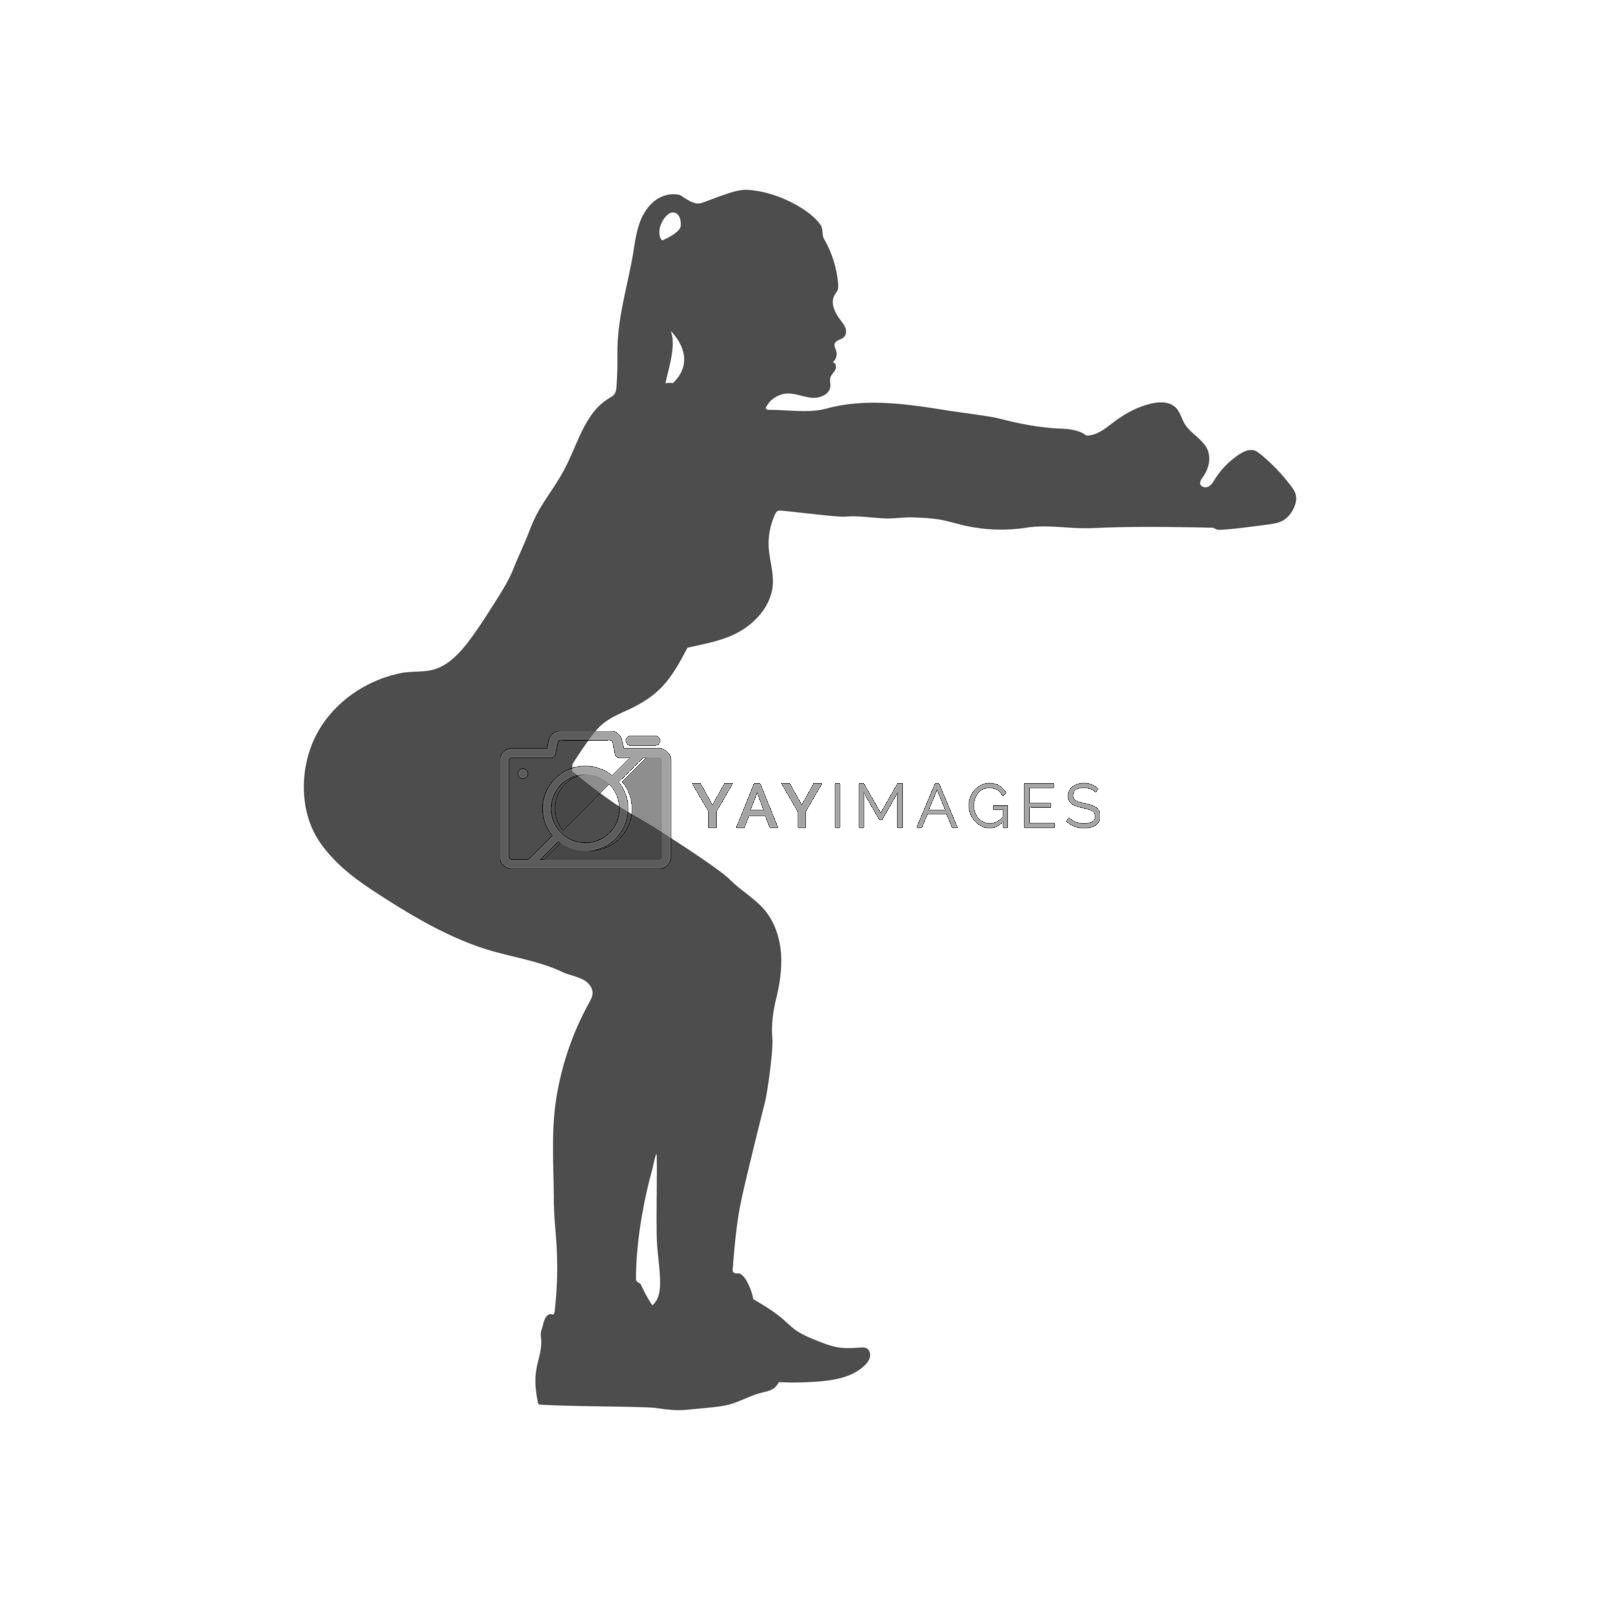 Silhouette of a female athlete. The athlete does a squat. Vector illustration, flat style.